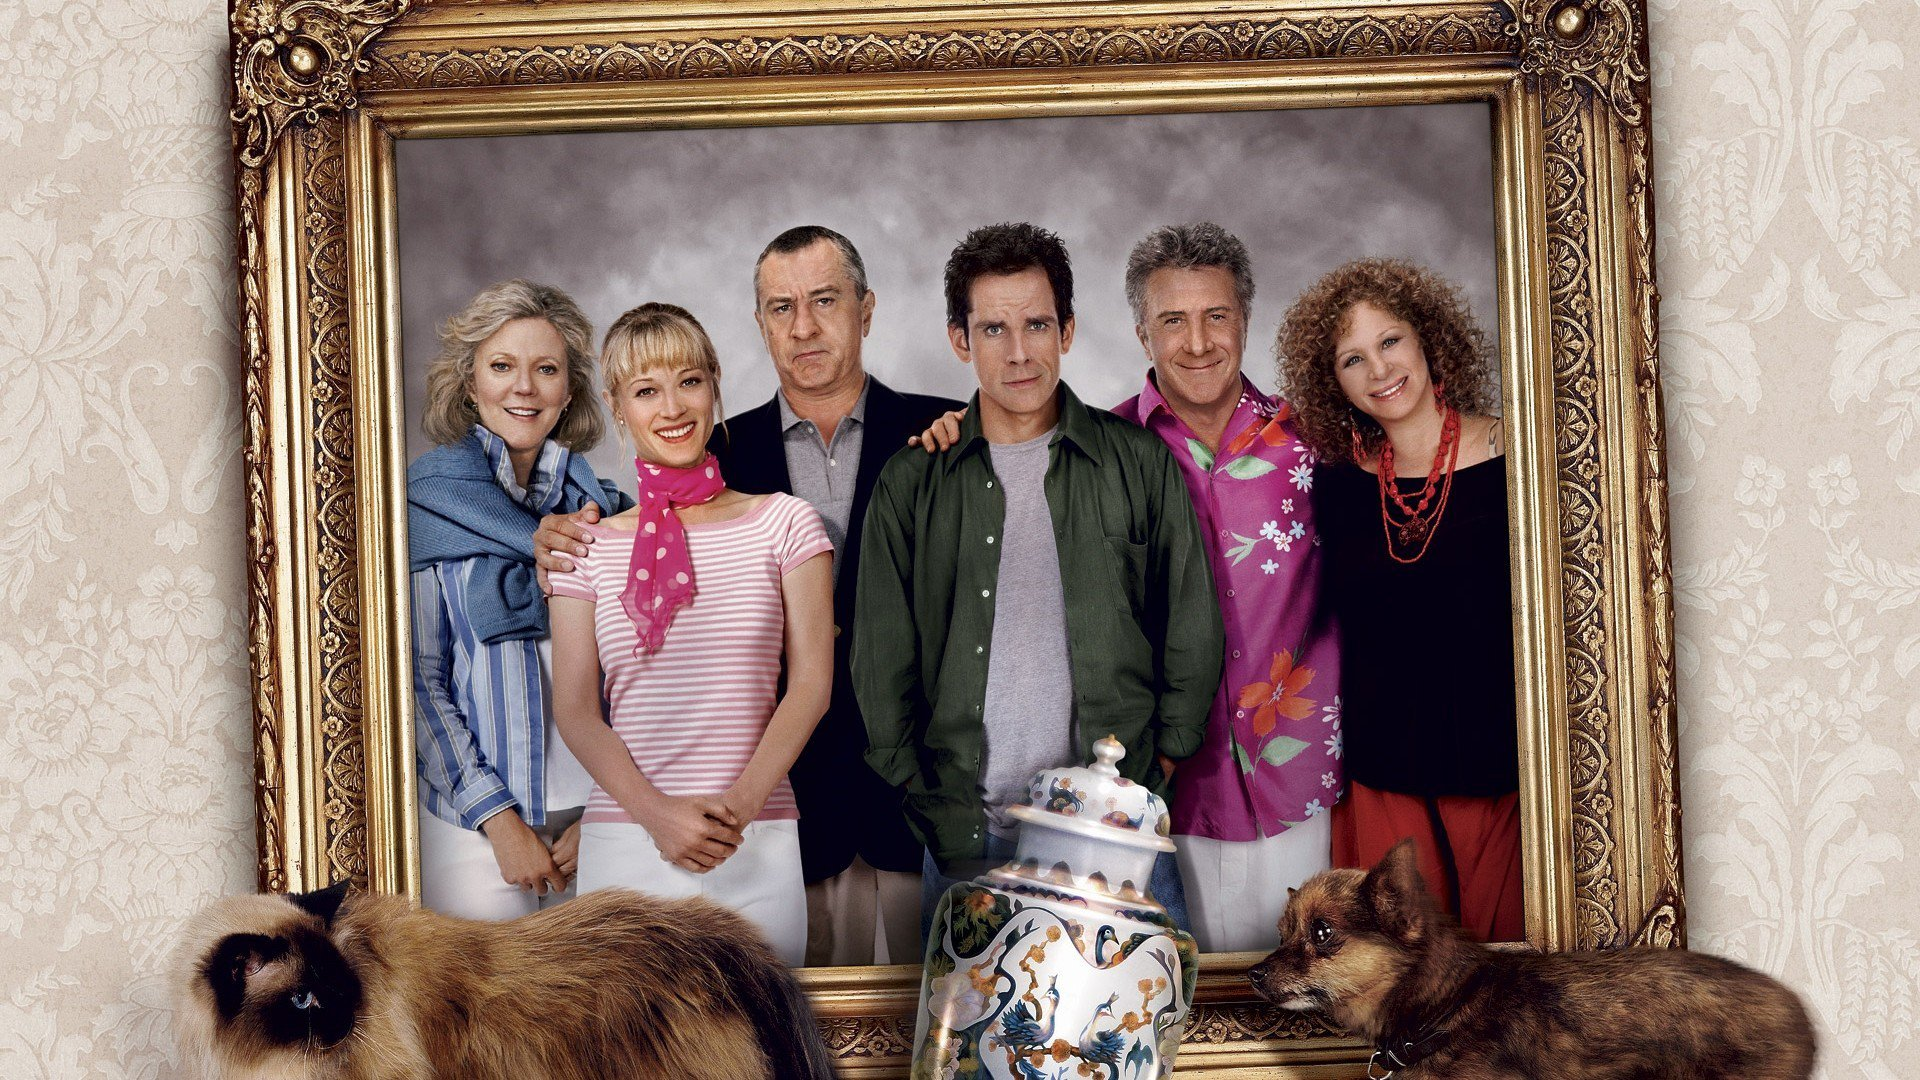 Review – Meet the Fockers (2004)